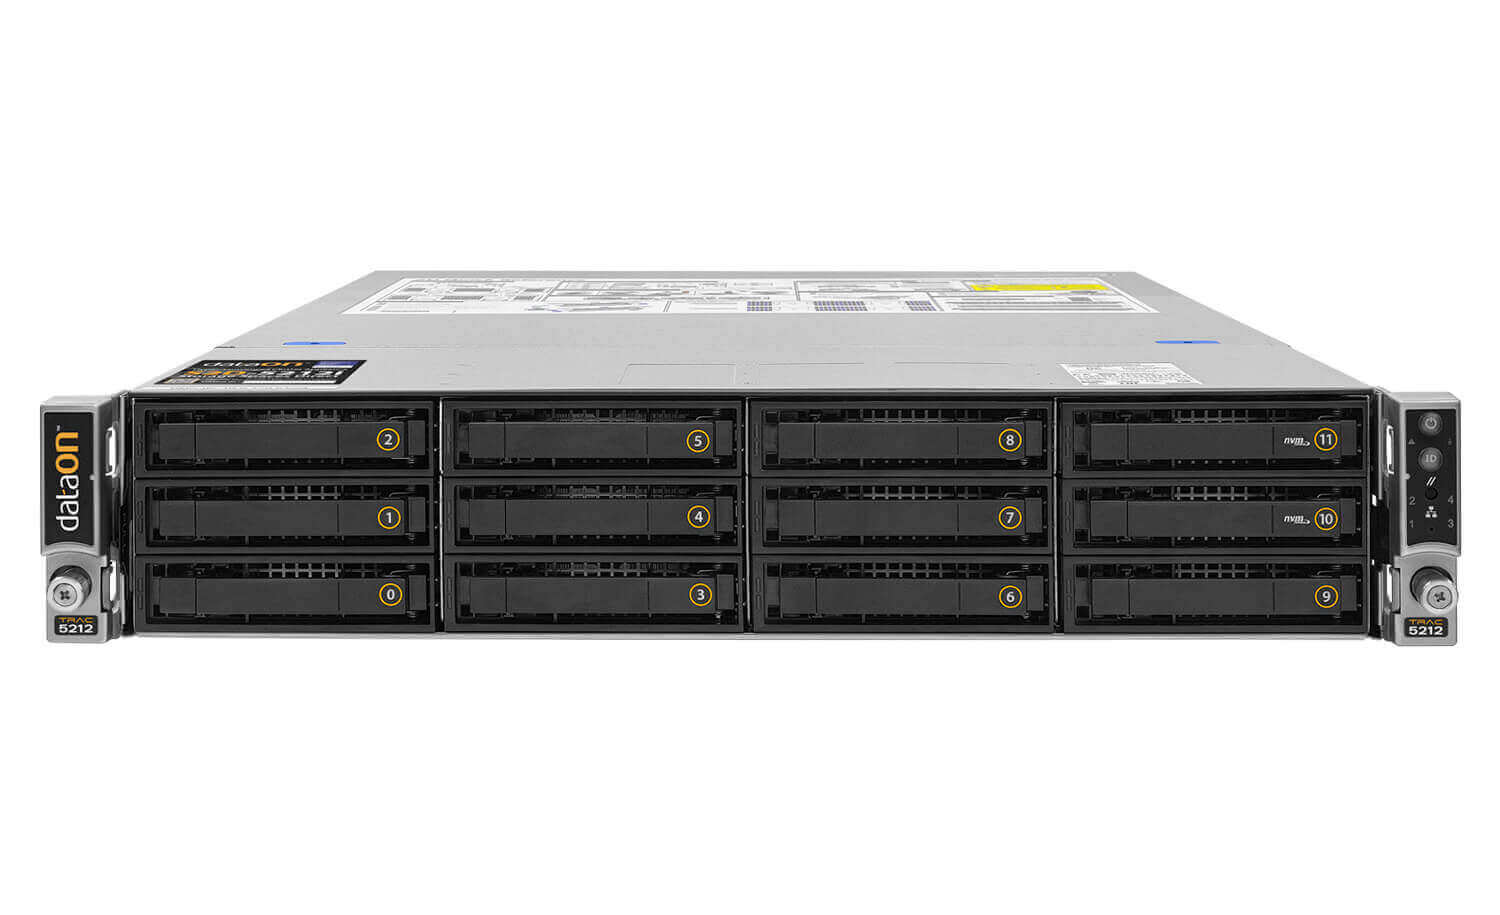 allsystems-producten-hyperconverged-systems-DataON_S2D-5212i_Front_View